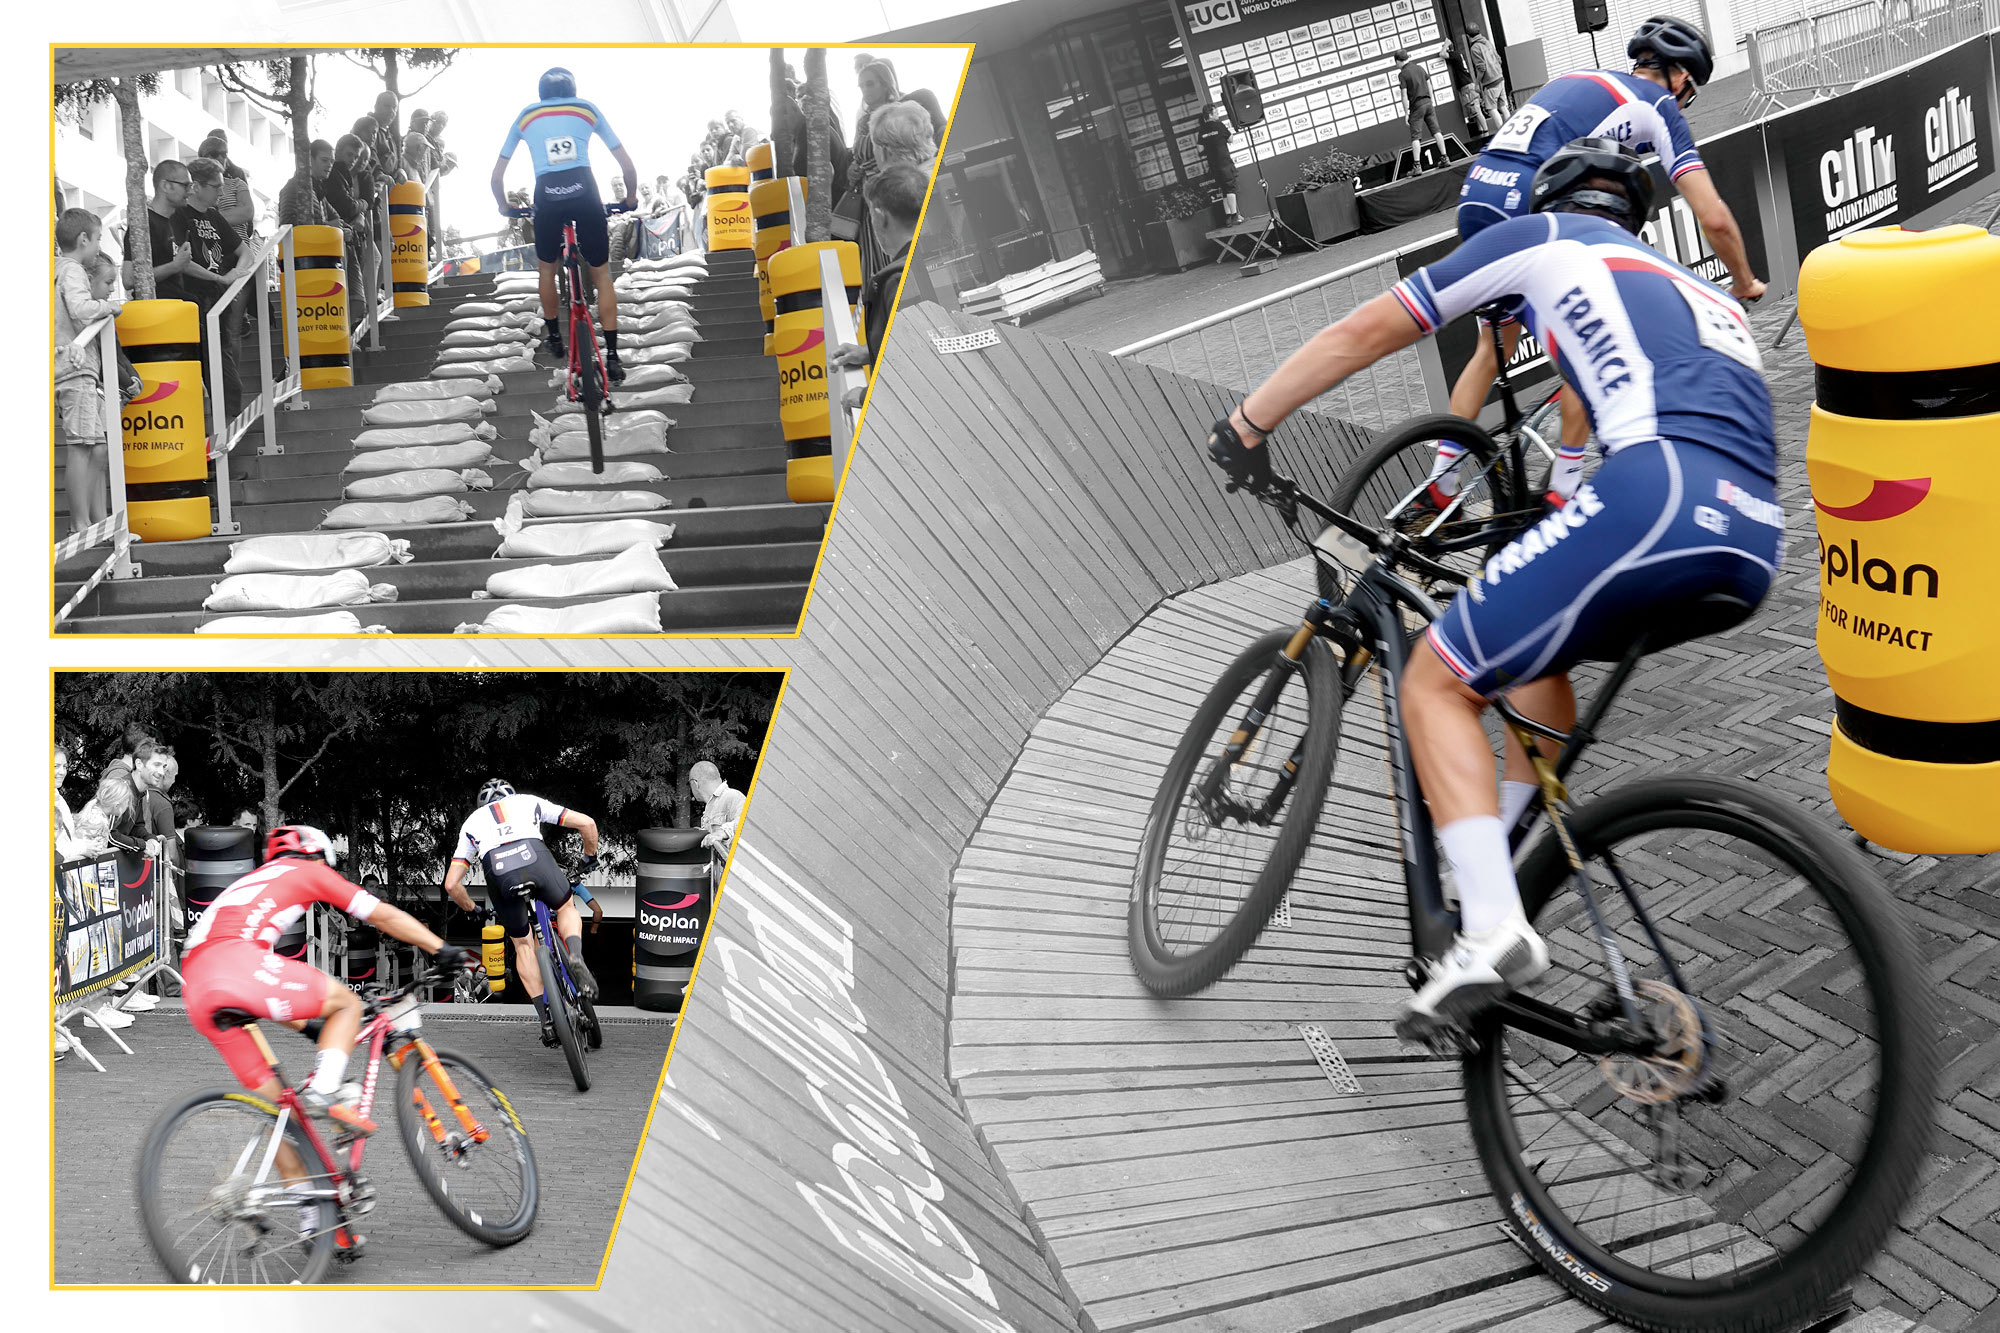 Safety barriers for the City Mountainbike cup